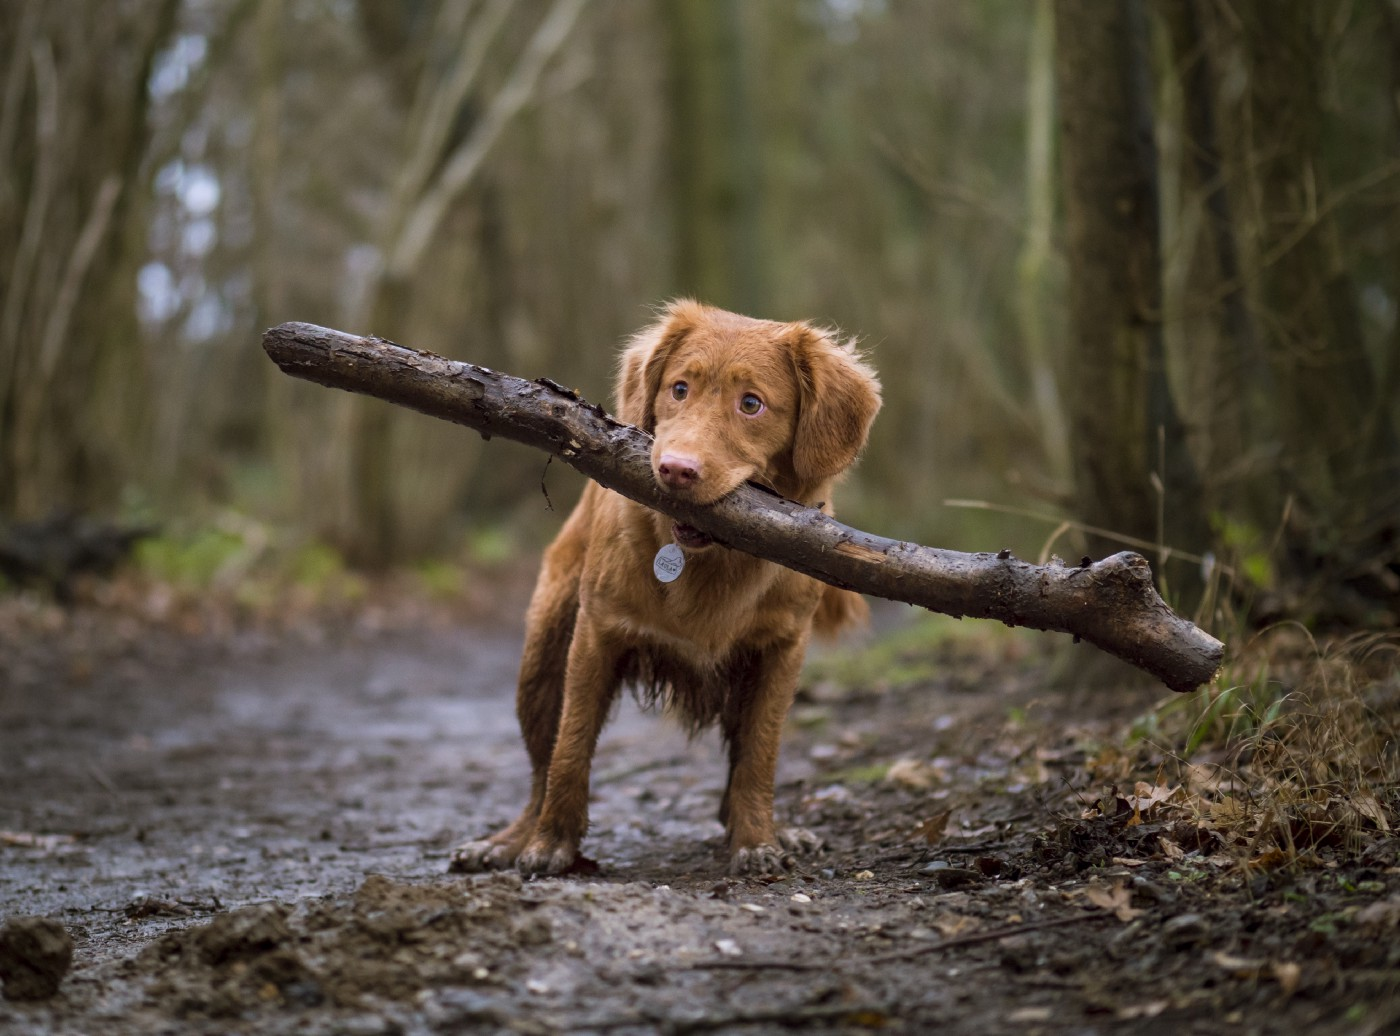 Dog carrying large branch in its mouth